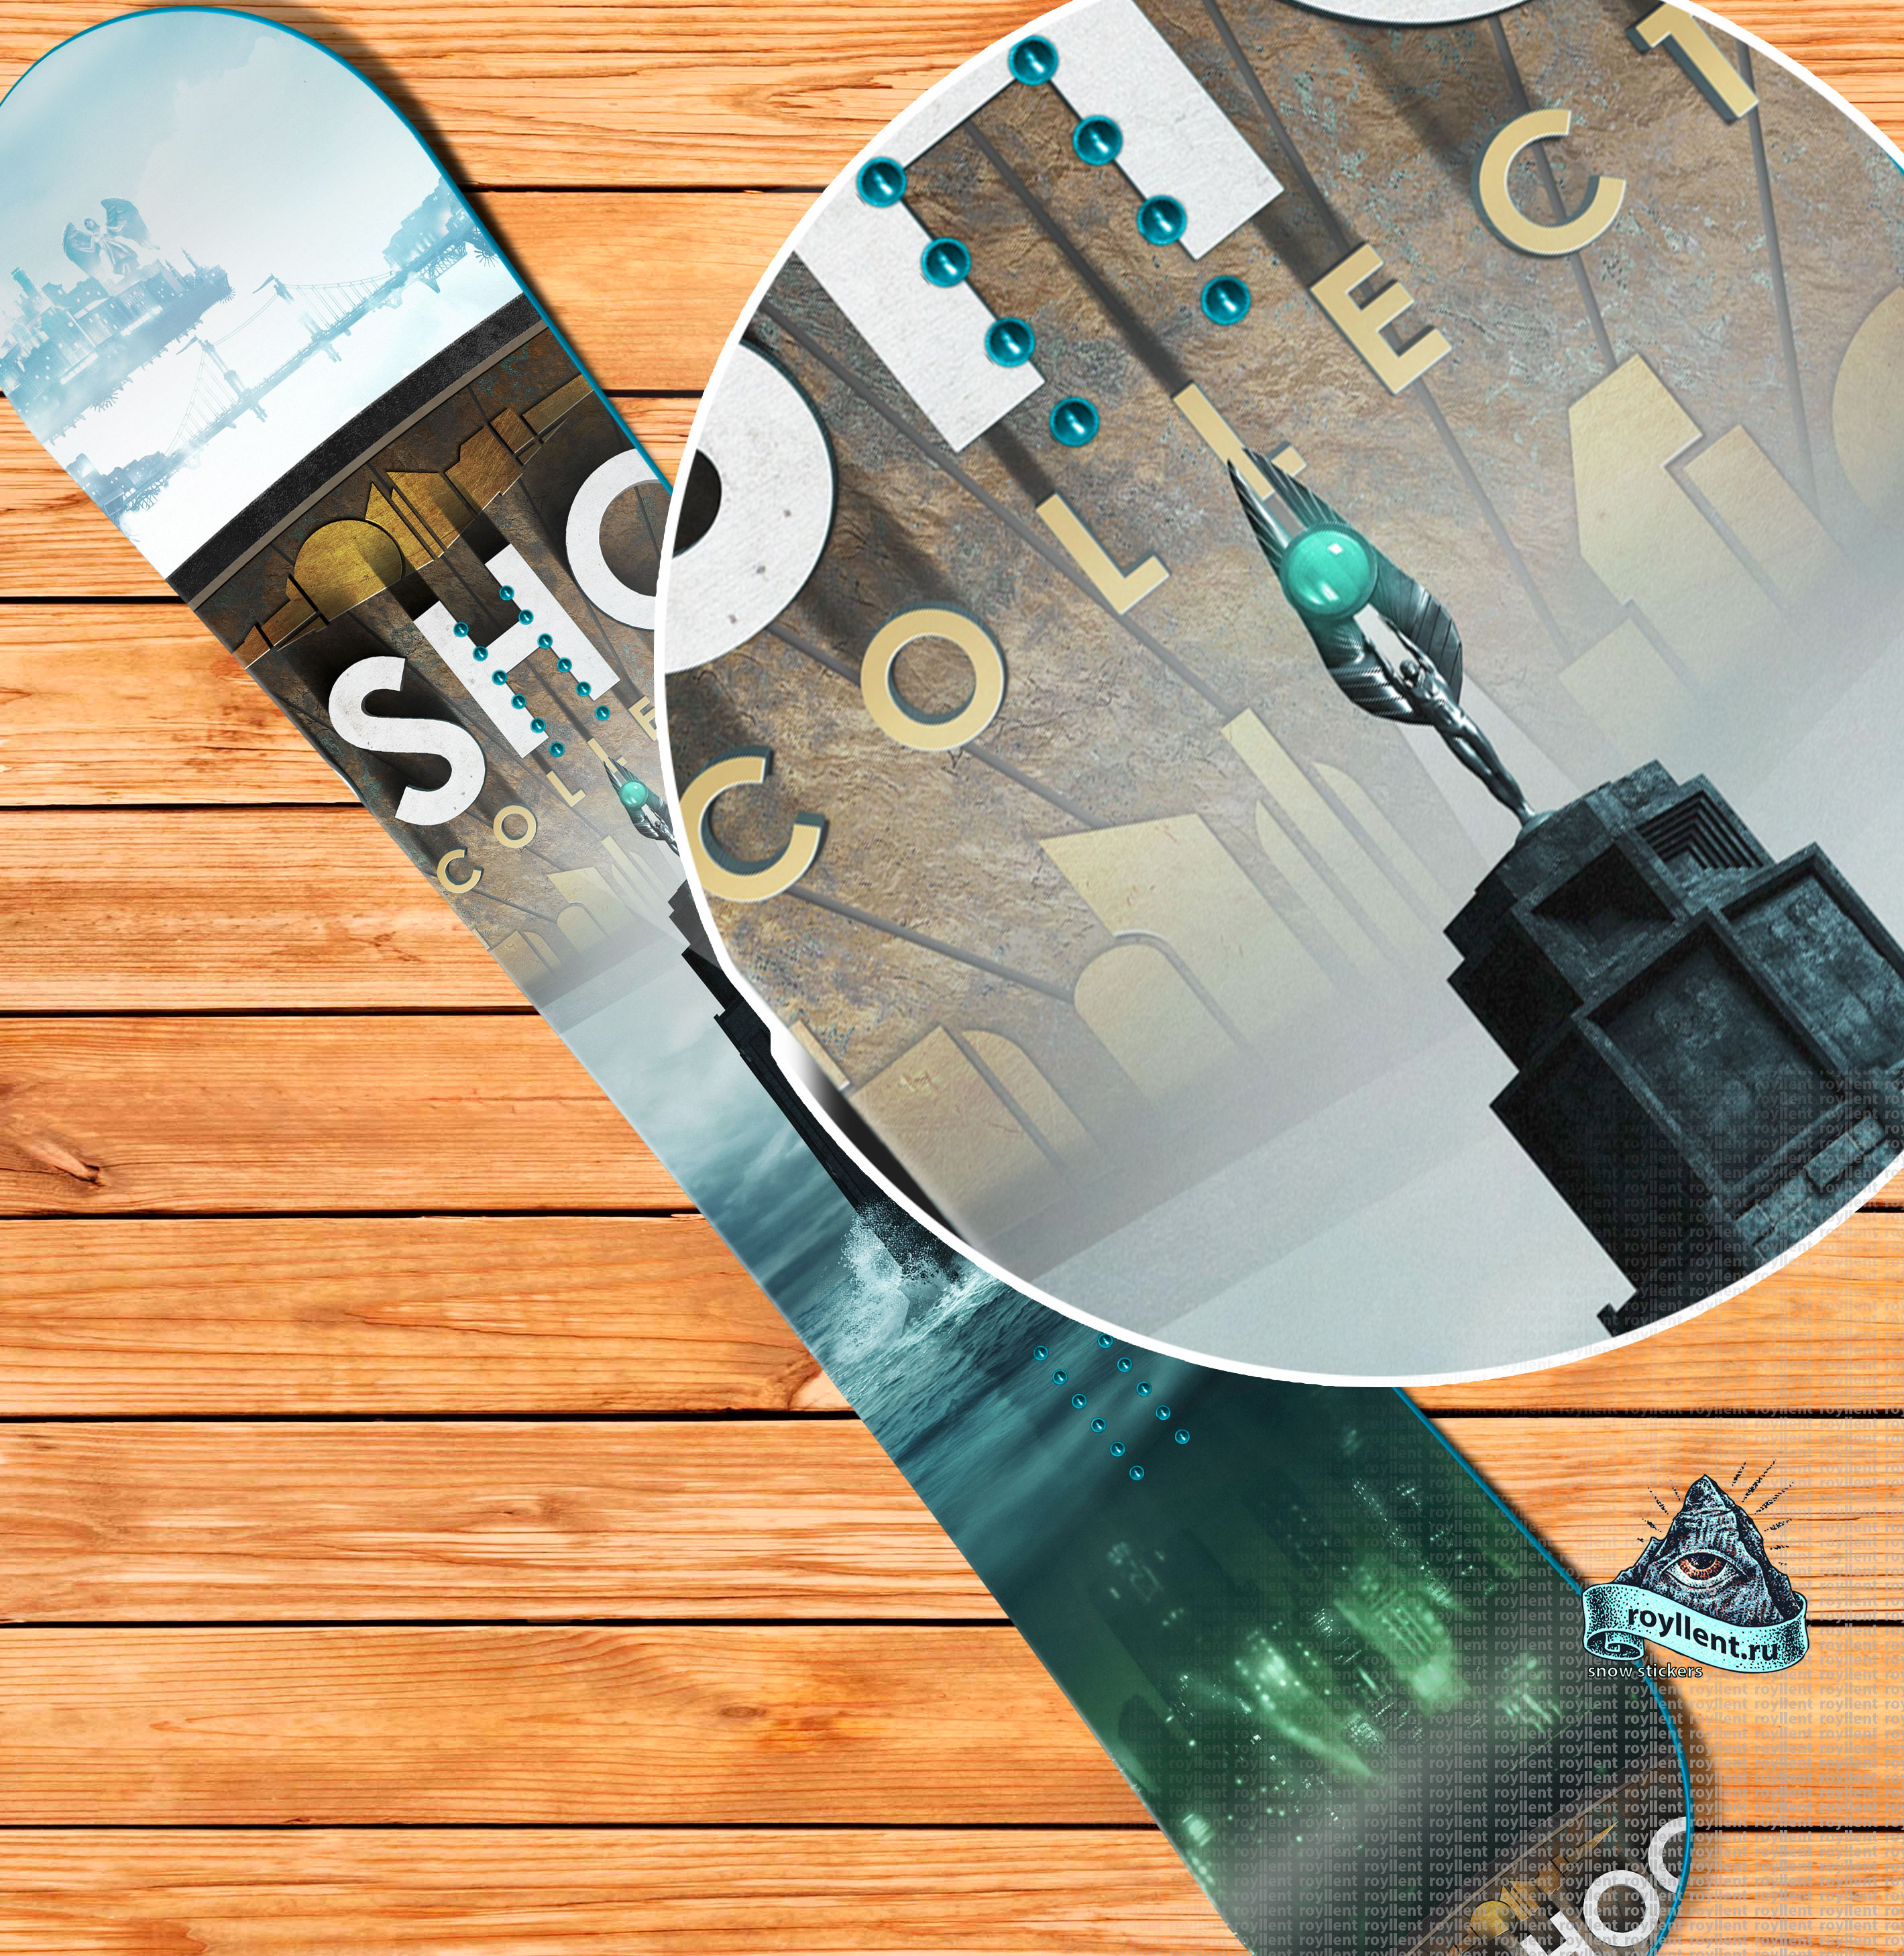 bioshock-the-collection-snowboard